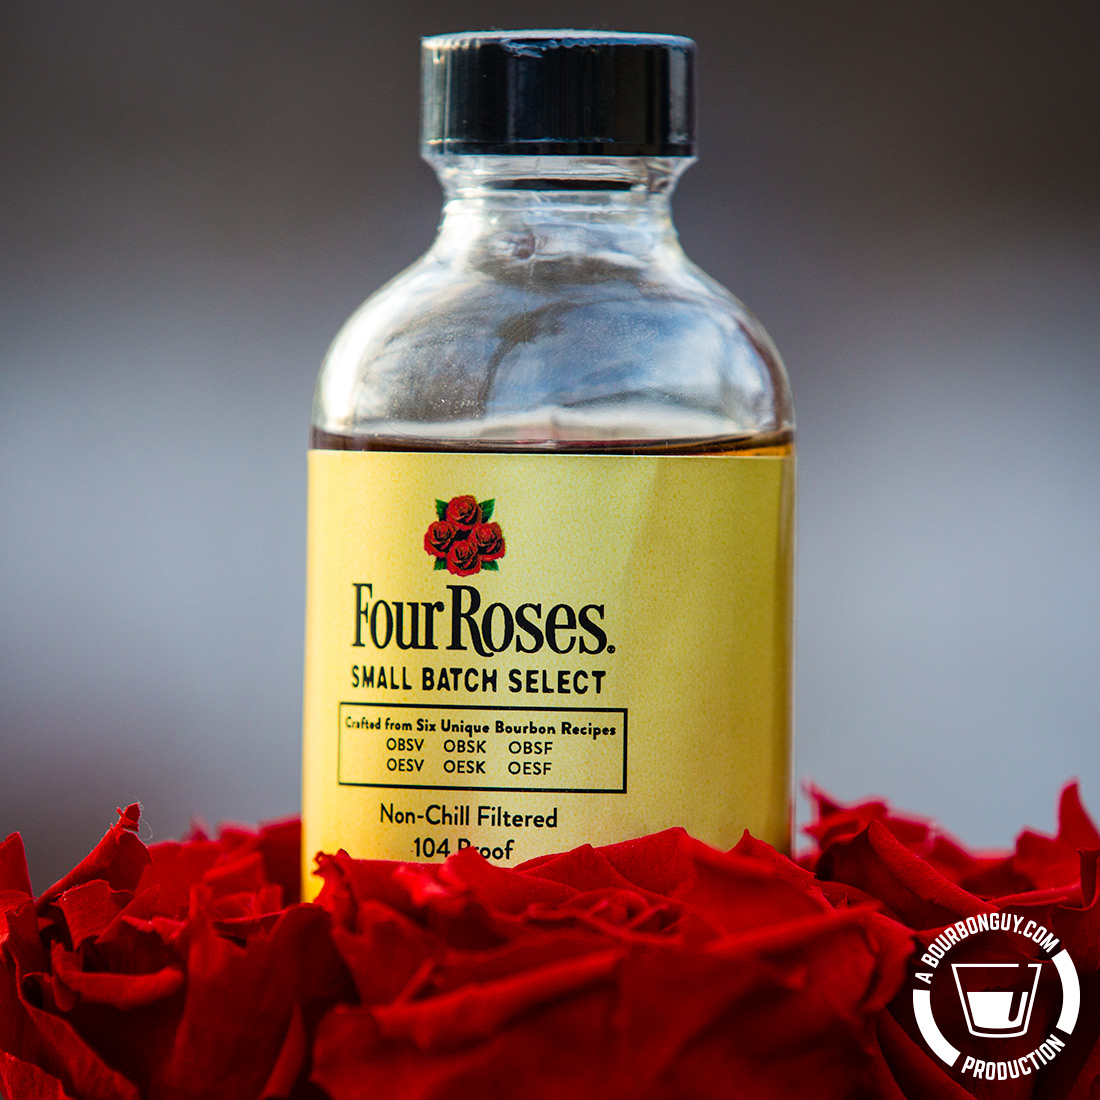 IMAGE: A sample bottle of Four Roses Small Batch Select sitting in a bouquet of roses